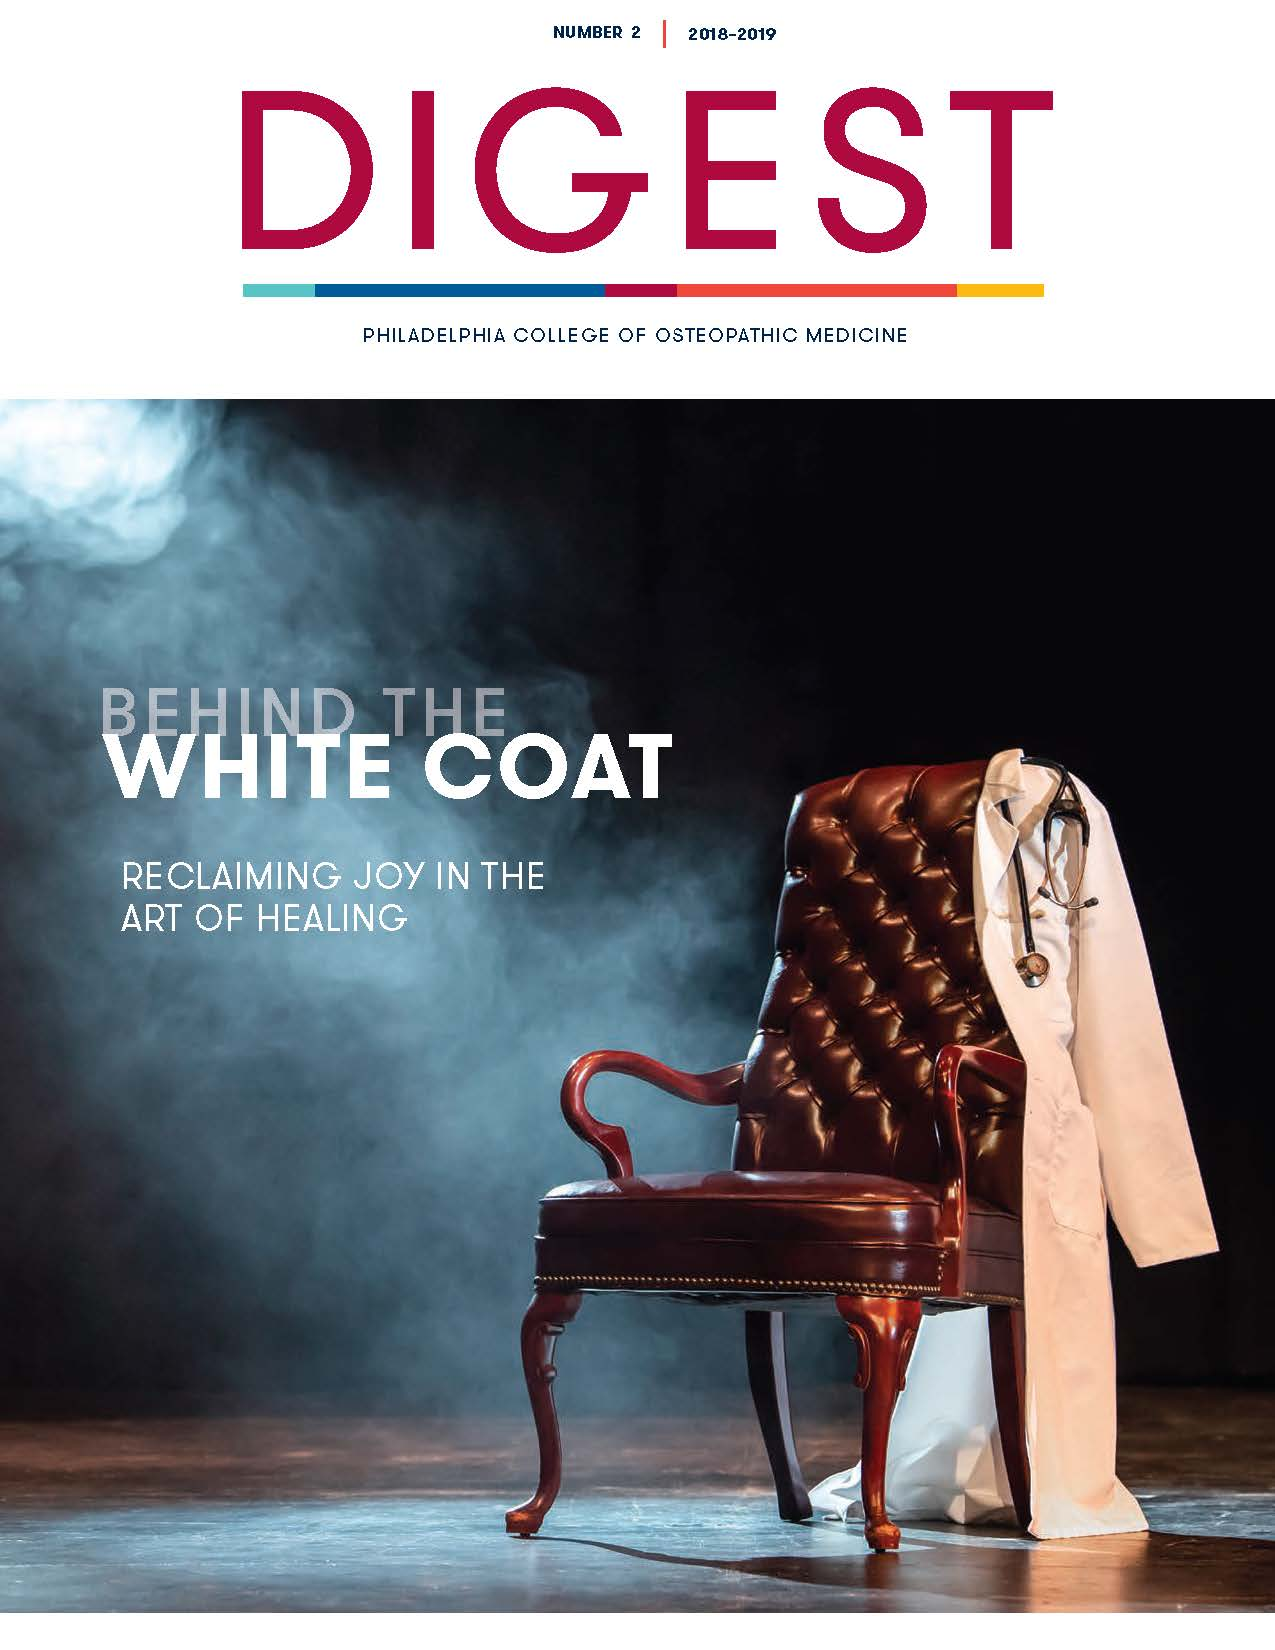 Cover of Digest Magazine, Number 2, 2018 - Behind the White Coat